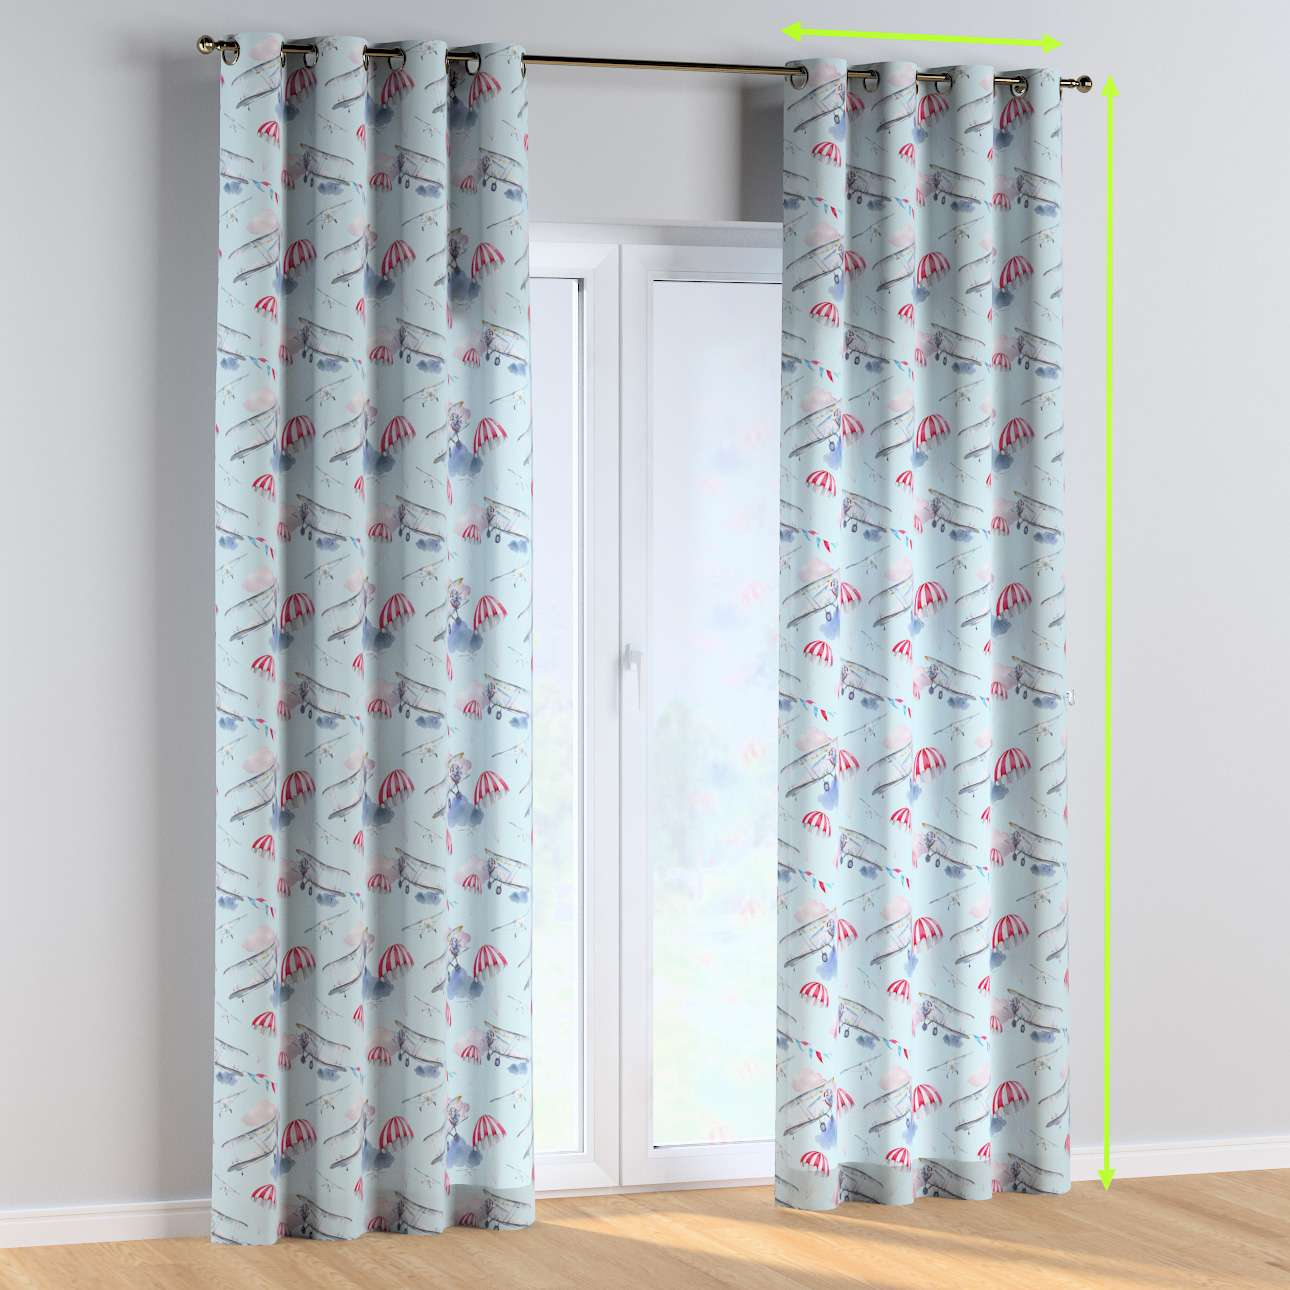 Eyelet curtains in collection Magic Collection, fabric: 500-10